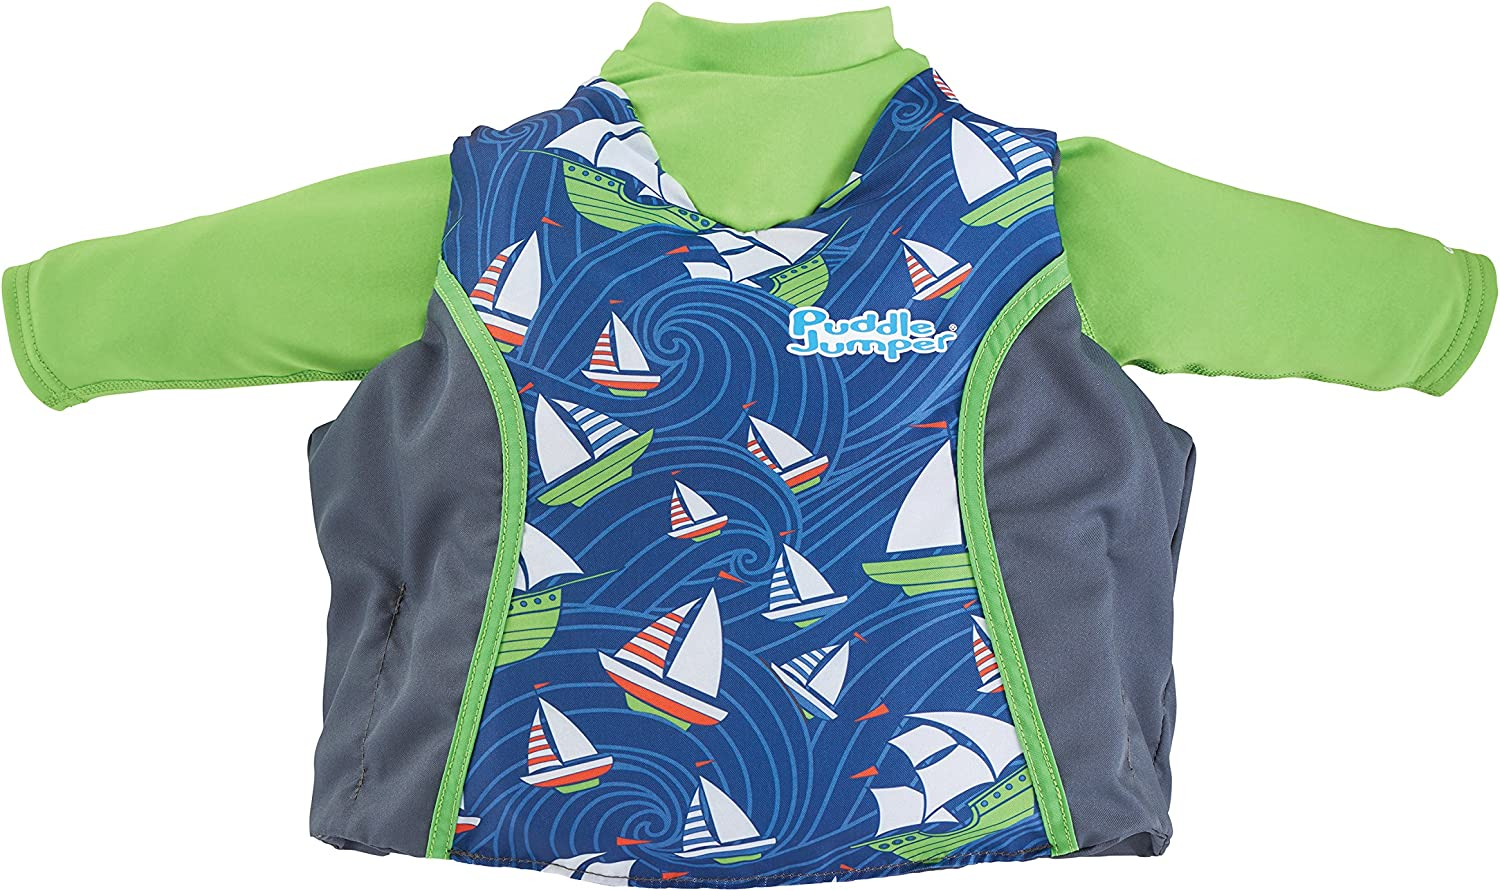 Puddle Jumper Kids 2-in-1 Life Jacket and Rash Guard, Sailboats